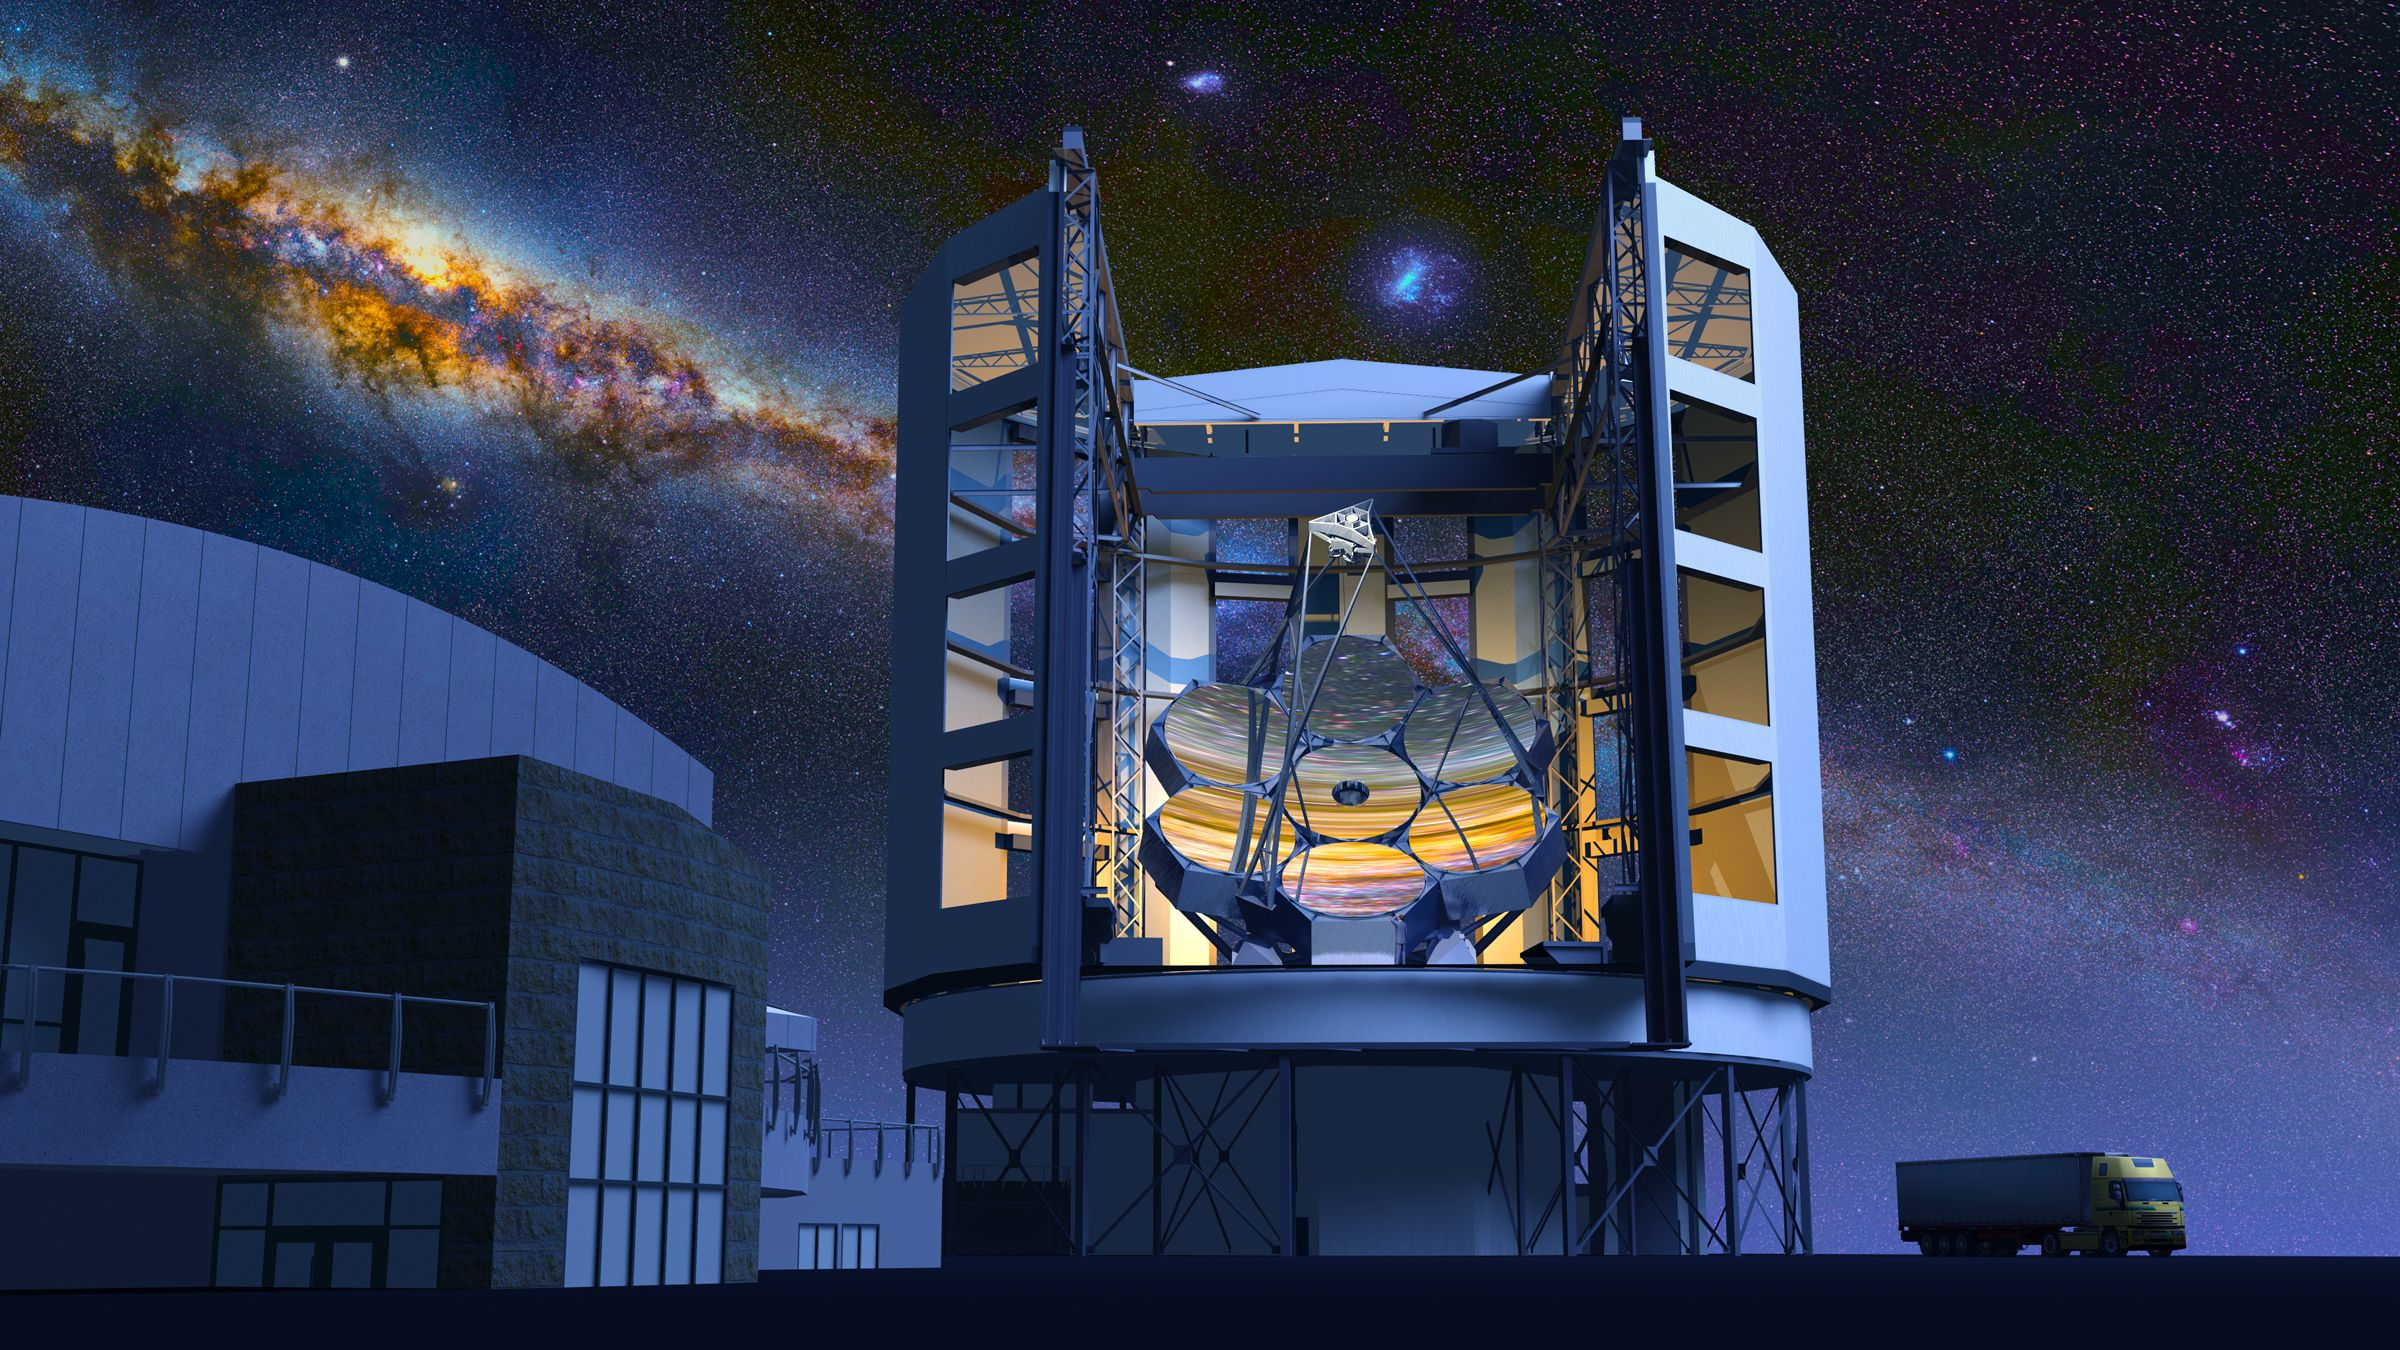 a look at the telescopes of the future and what we will see